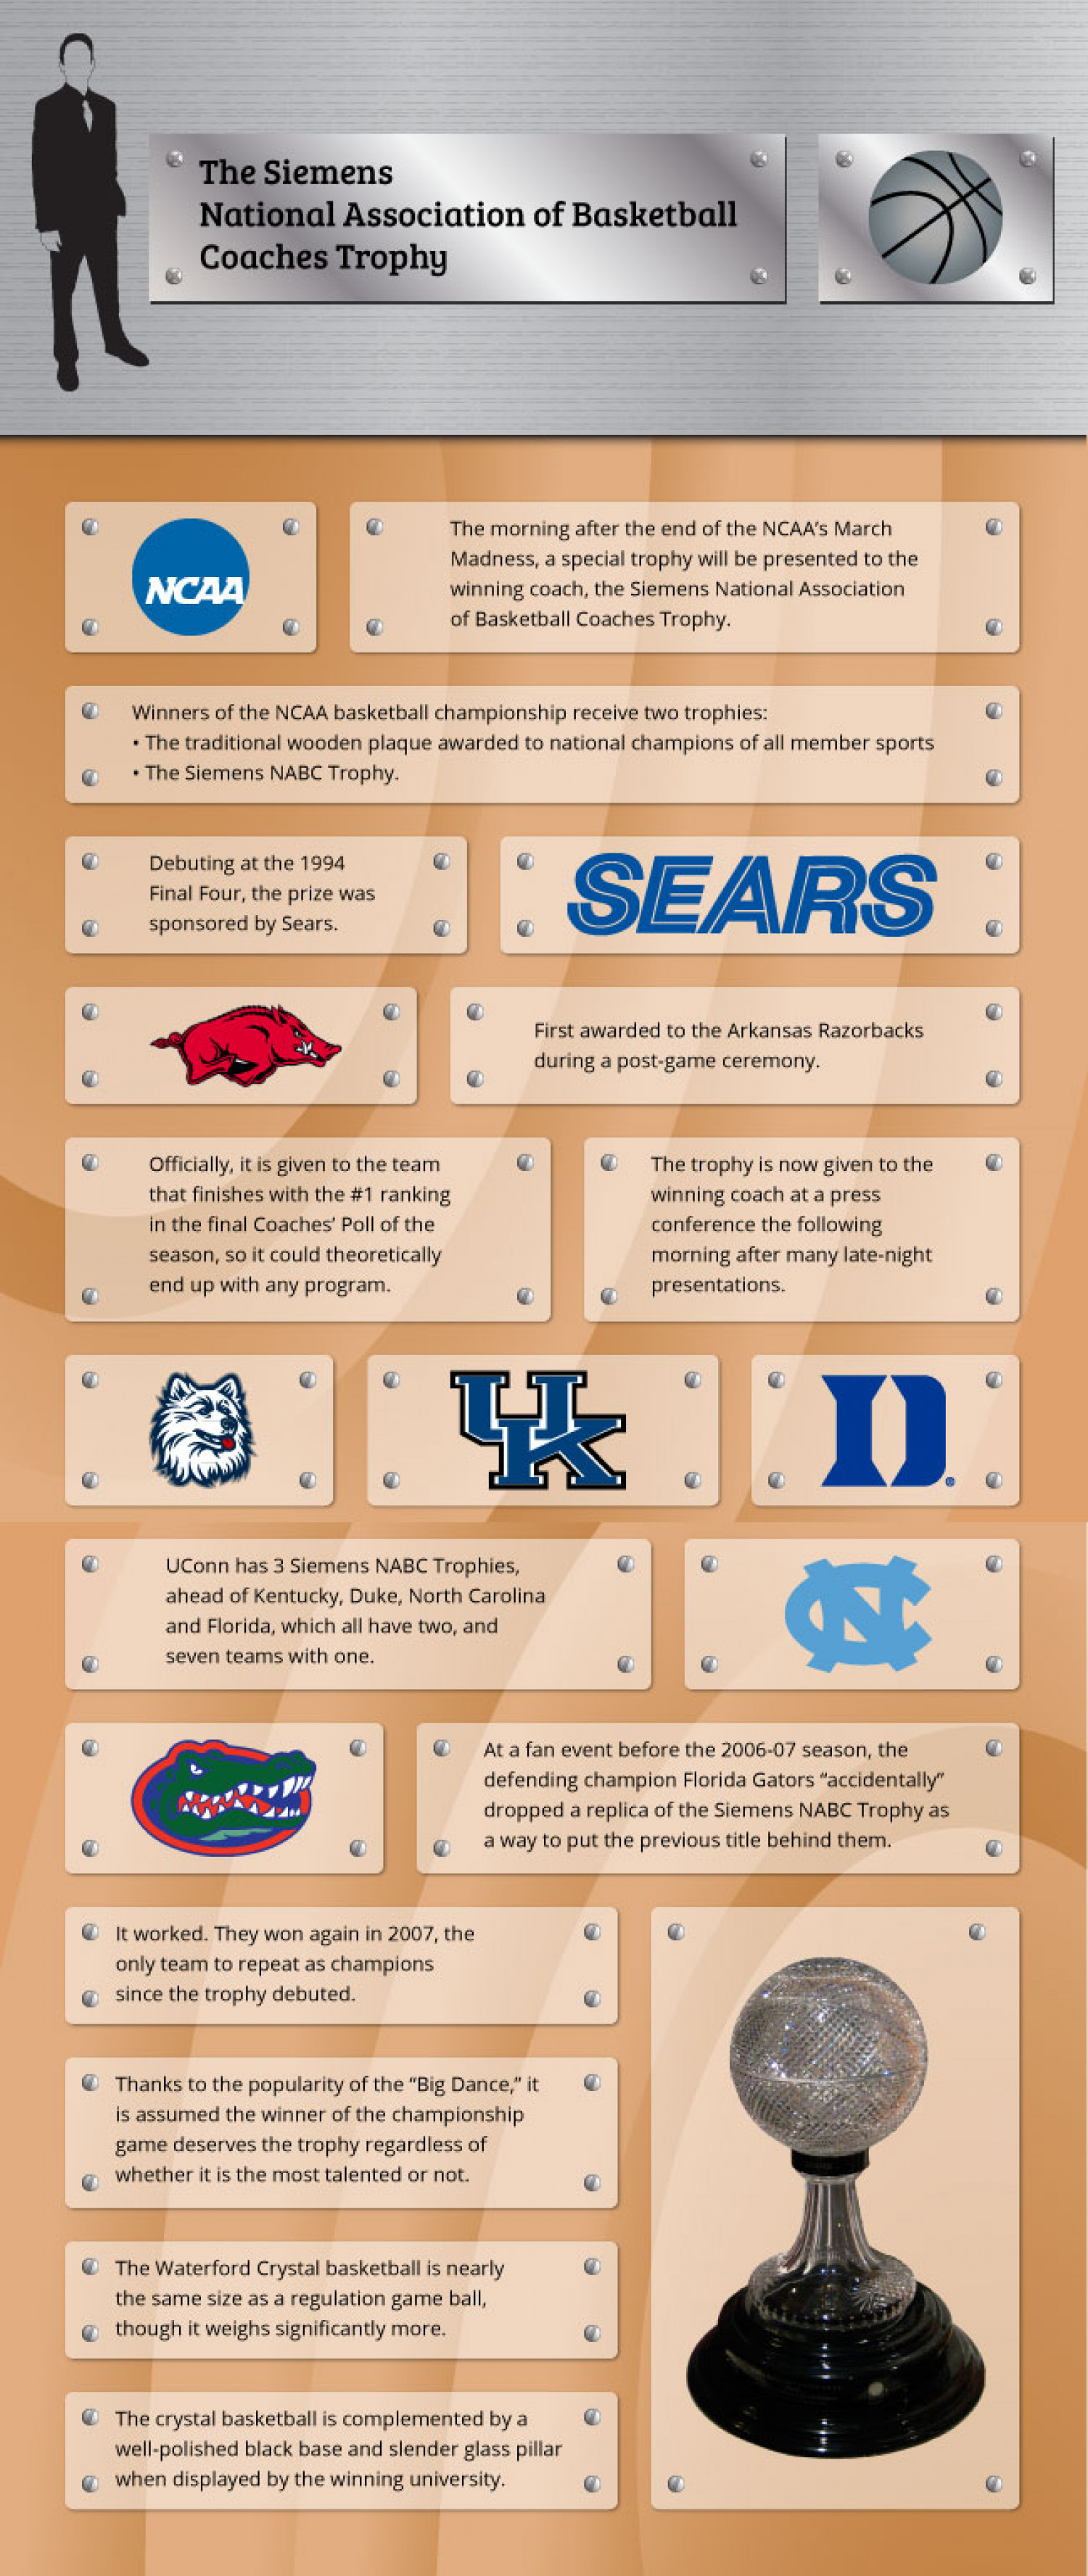 Infographic of the Siemens National Association of Basketball Coaches Trophy Infographic